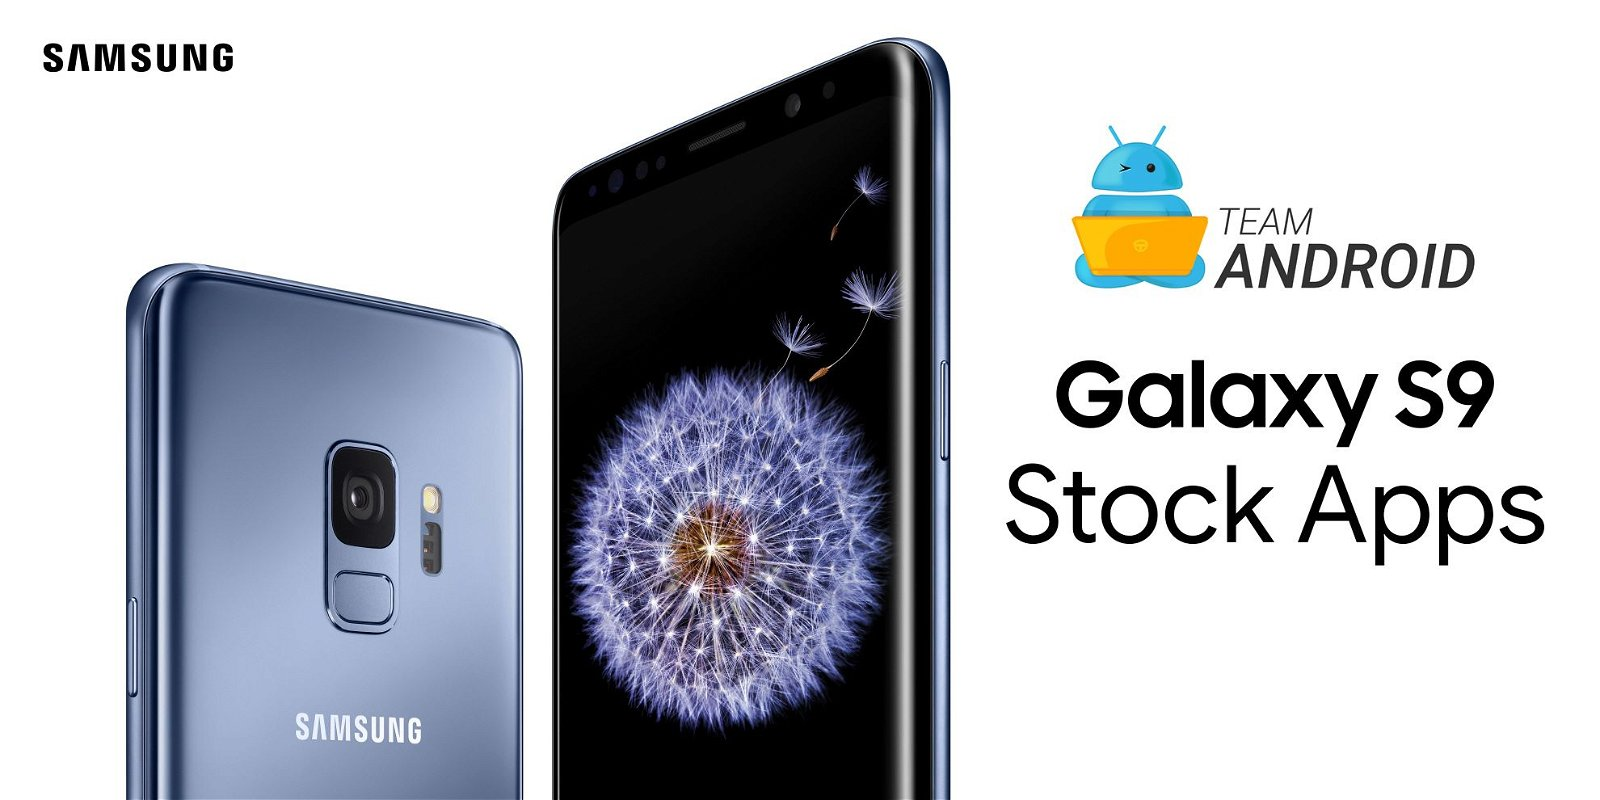 Galaxy S9 Stock Apps